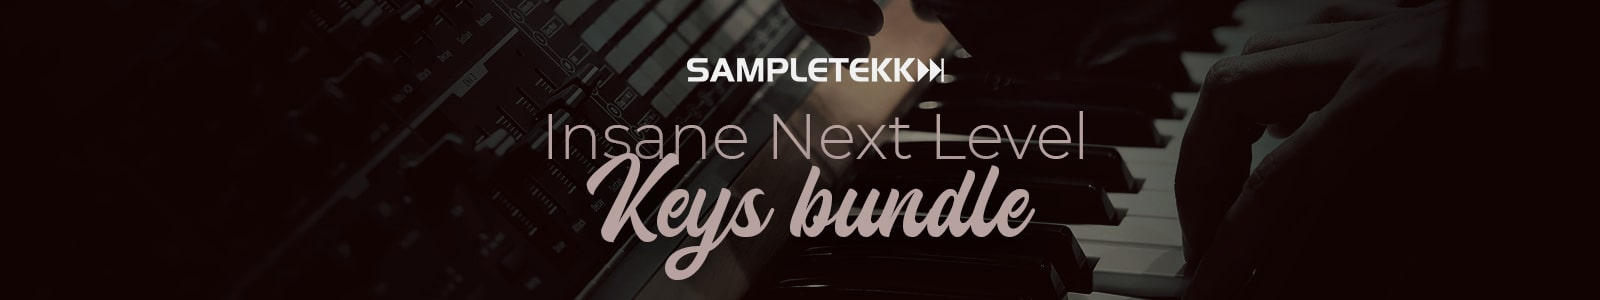 sampletekk keys bundle